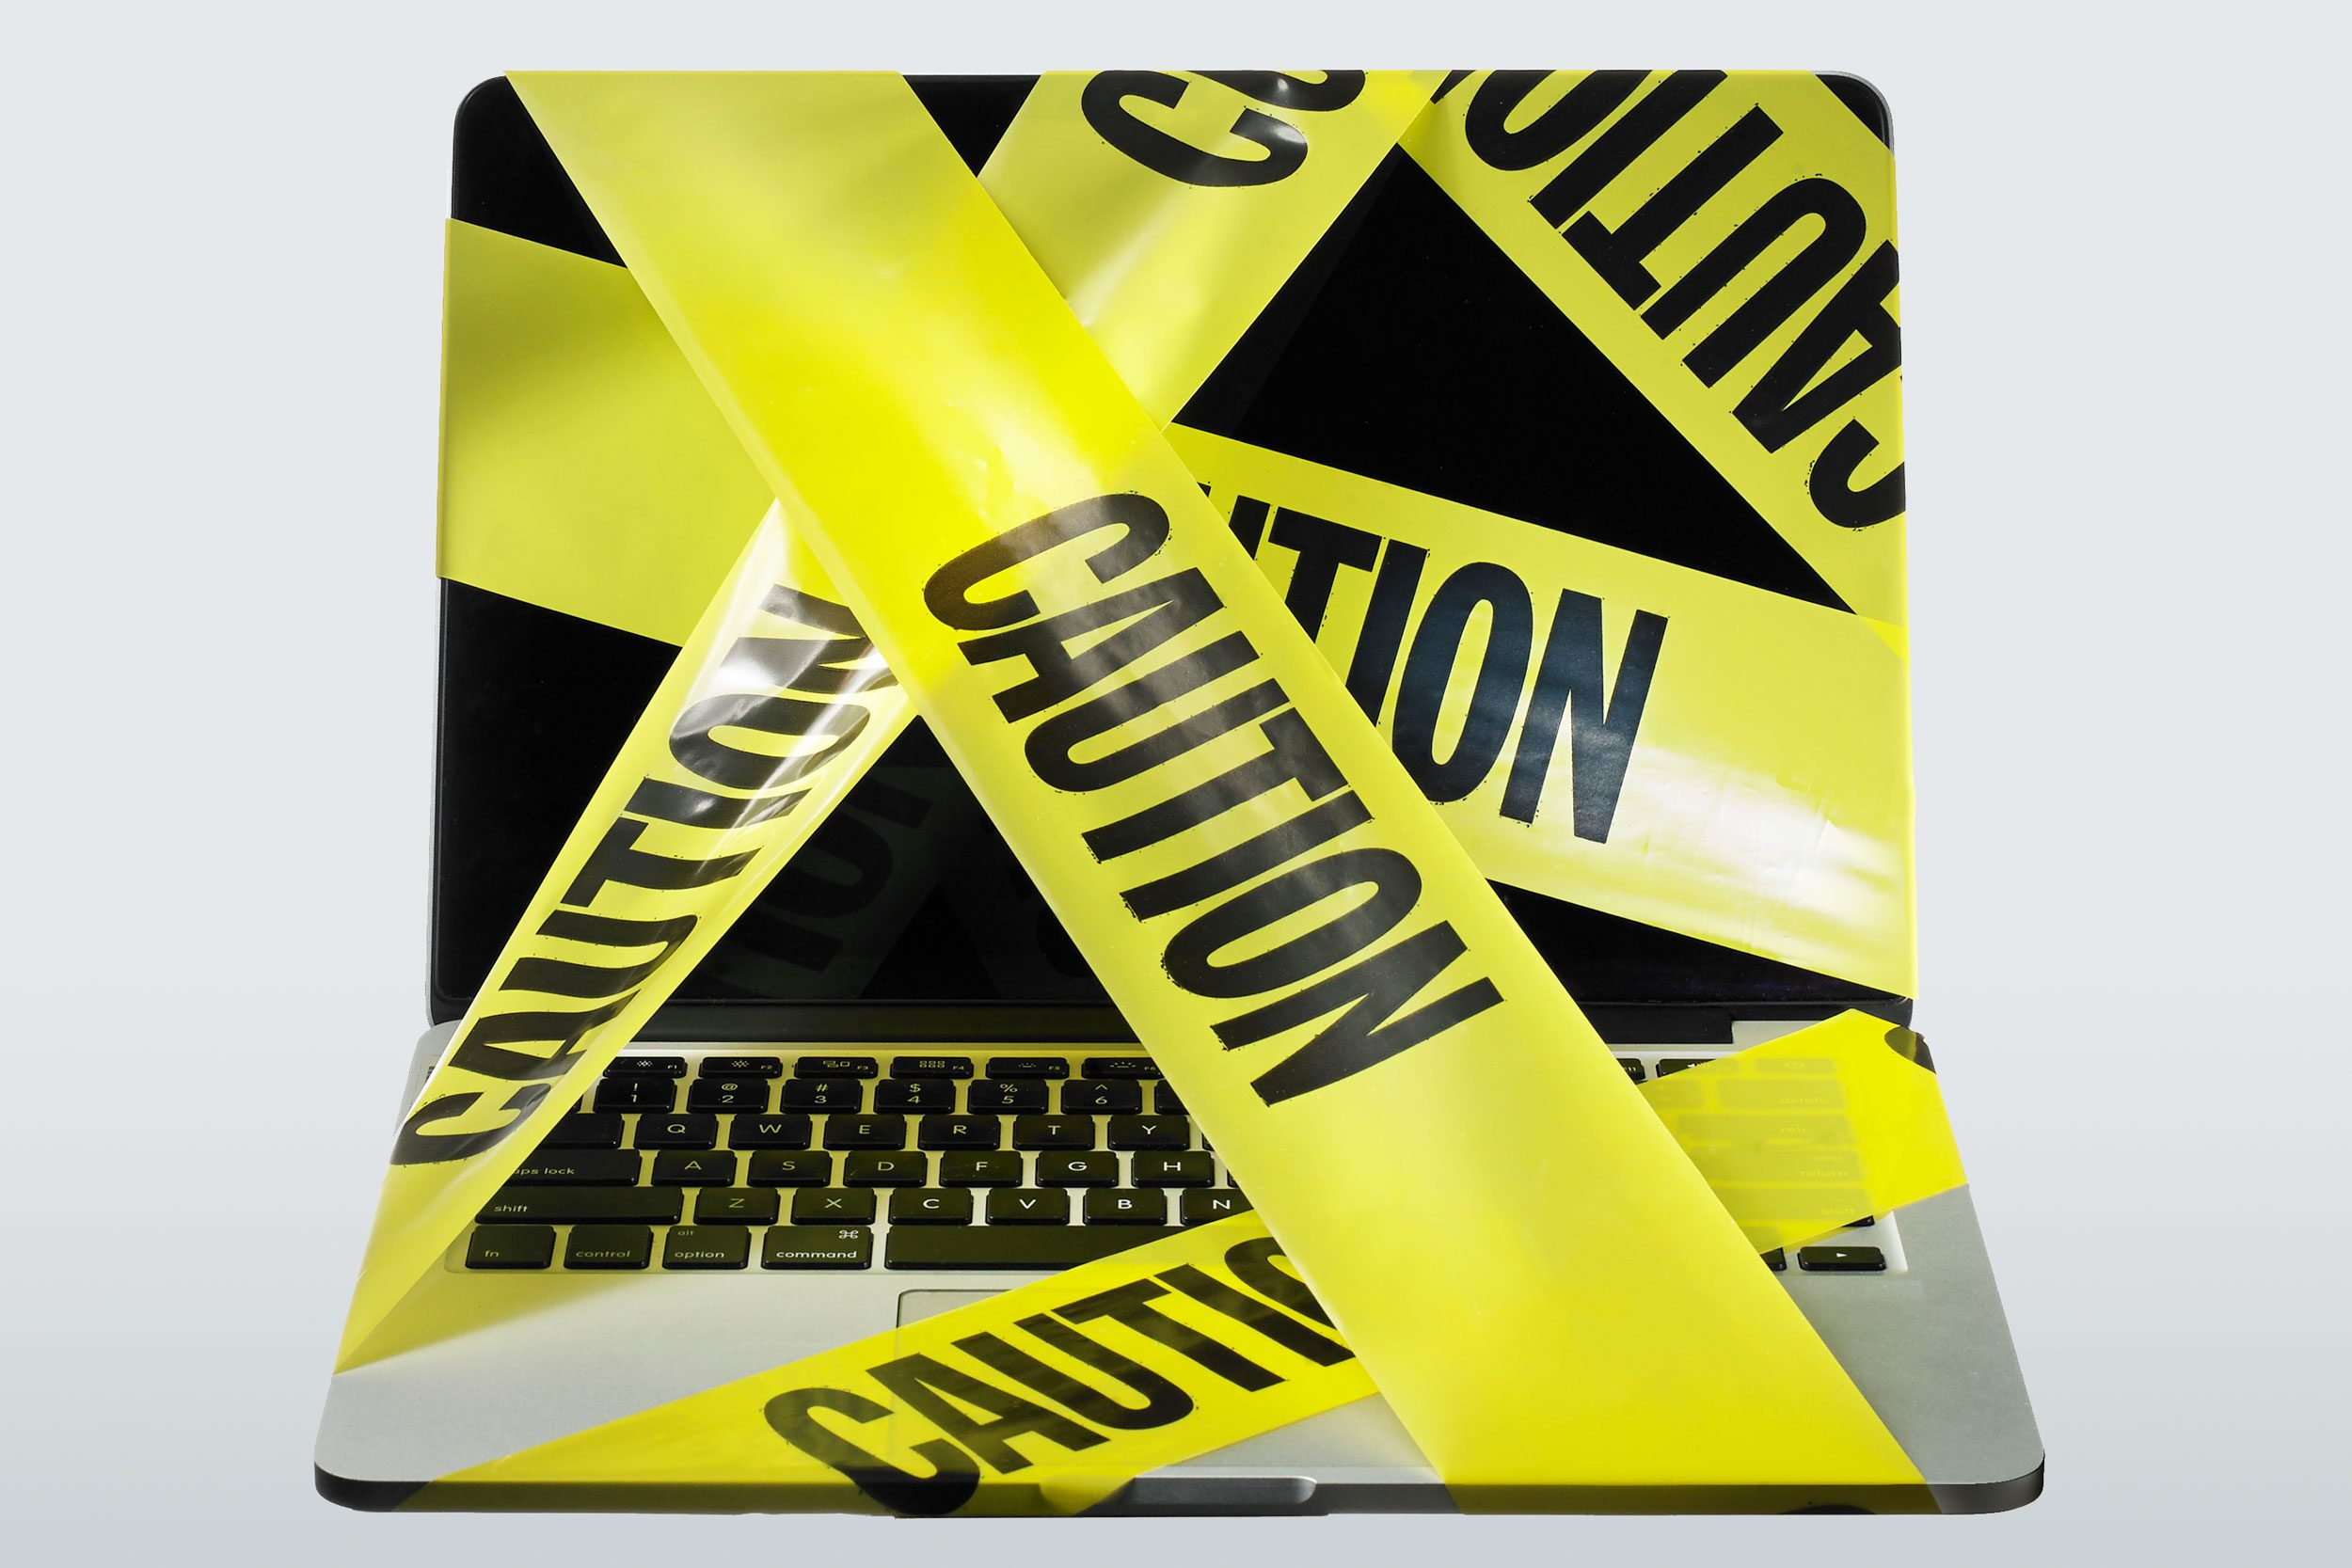 laptop computer wrapped in caution tape